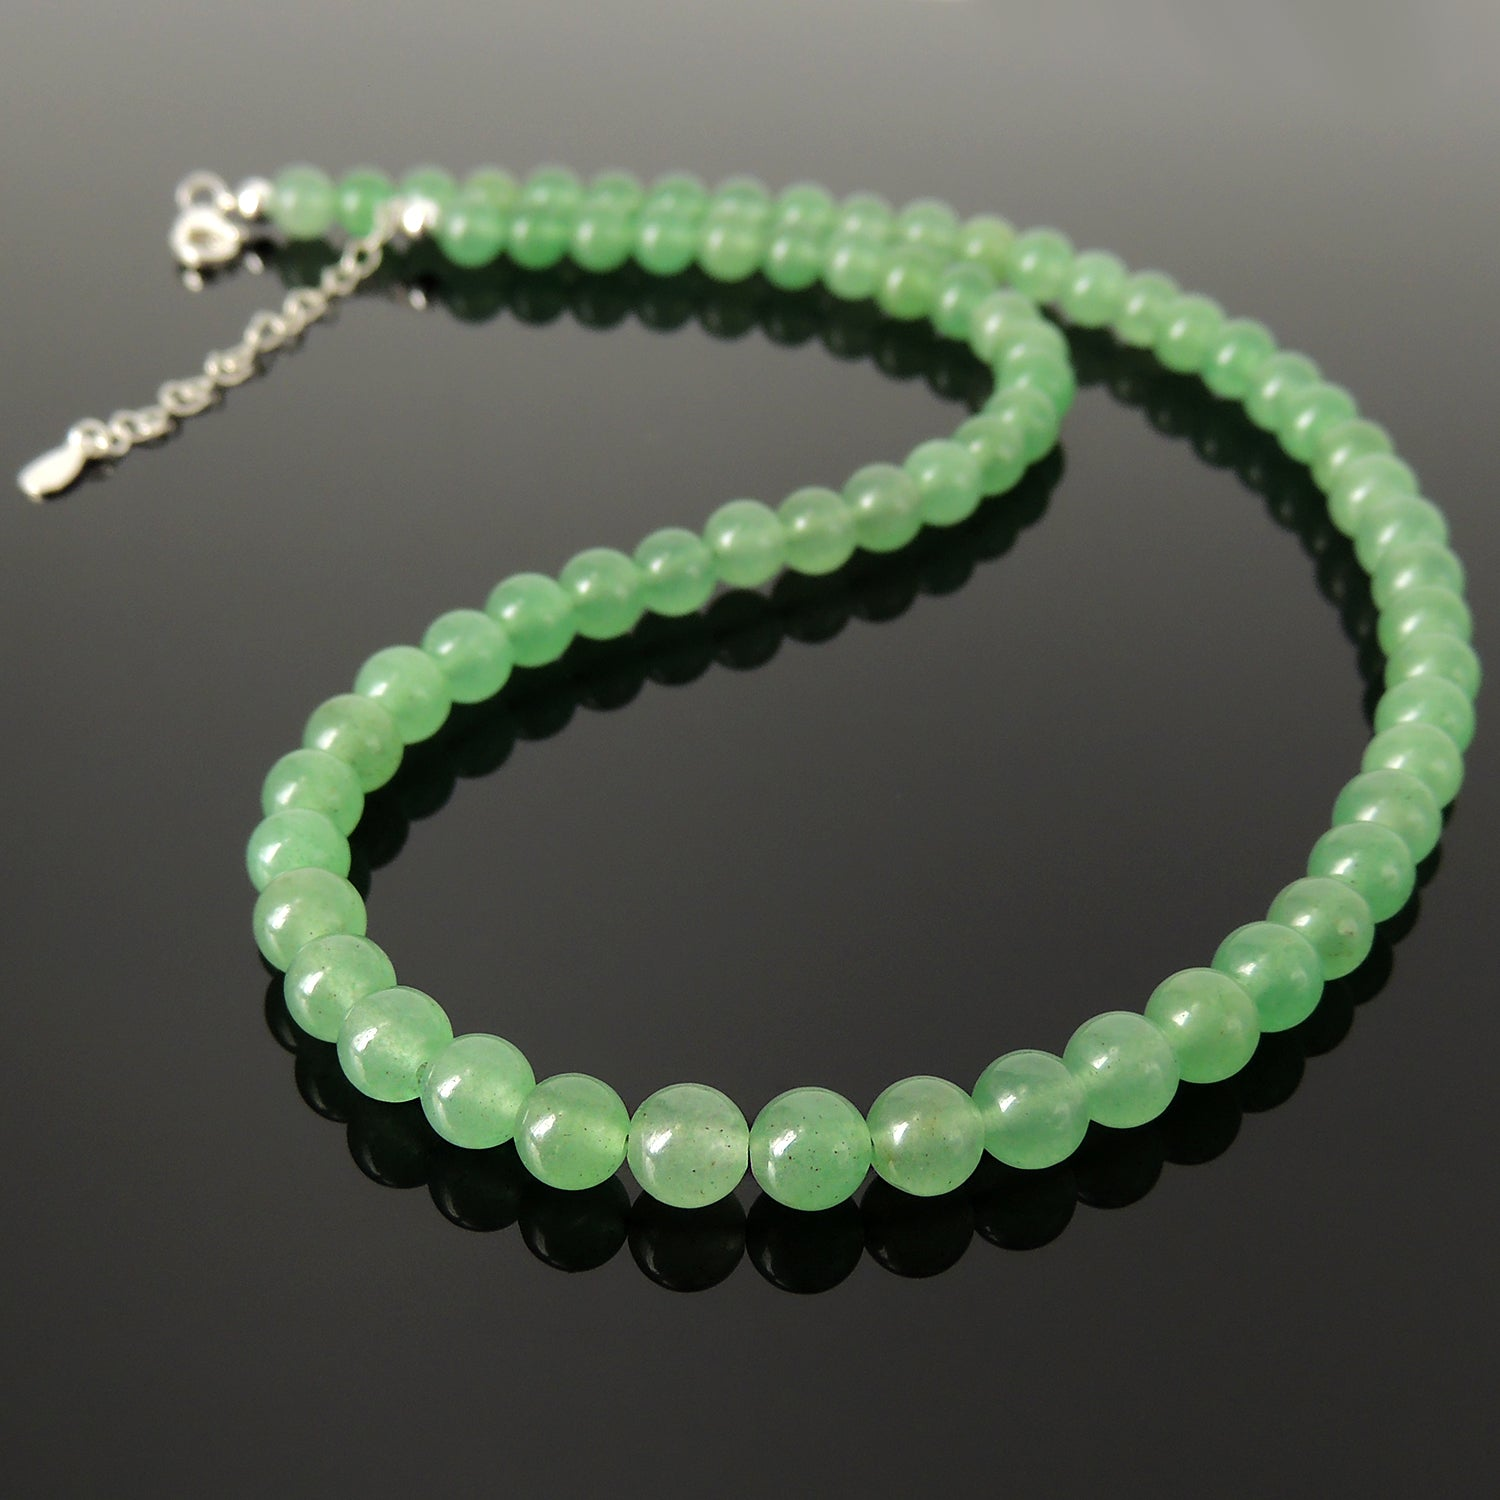 Handmade Adjustable Chain Necklace -  Natural Green Aventurine Quartz Crystals, 6mm Beads, Genuine Non-Plated S925 Sterling Silver Parts for Men's Women's Casual Wear, Healing, Protection, Mindfulness Meditation, Awareness NK260